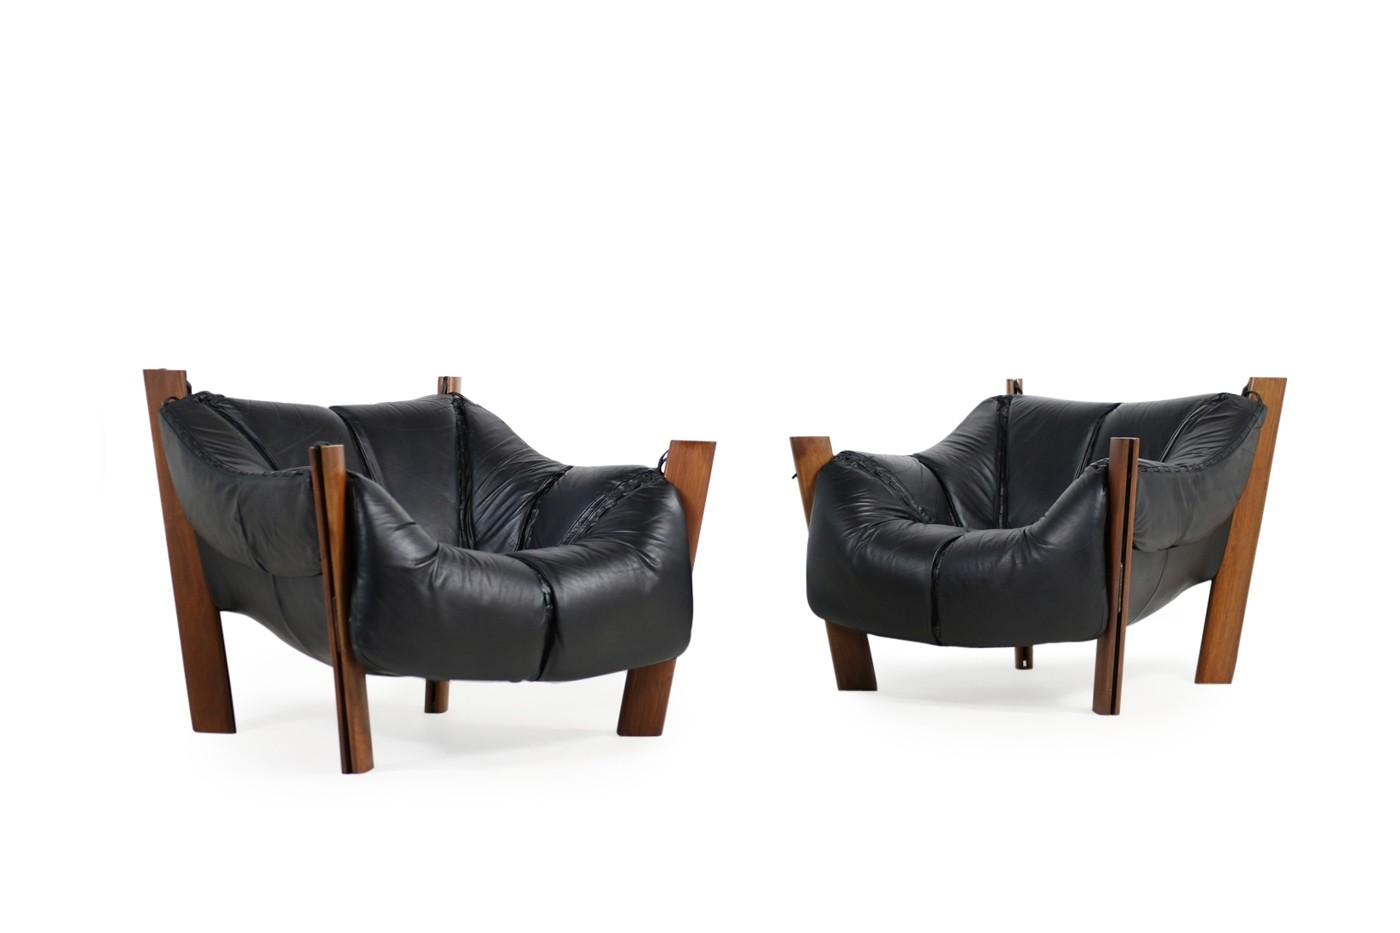 Pair Of 1970s Brazilian Percival Lafer Leather Lounge Chairs